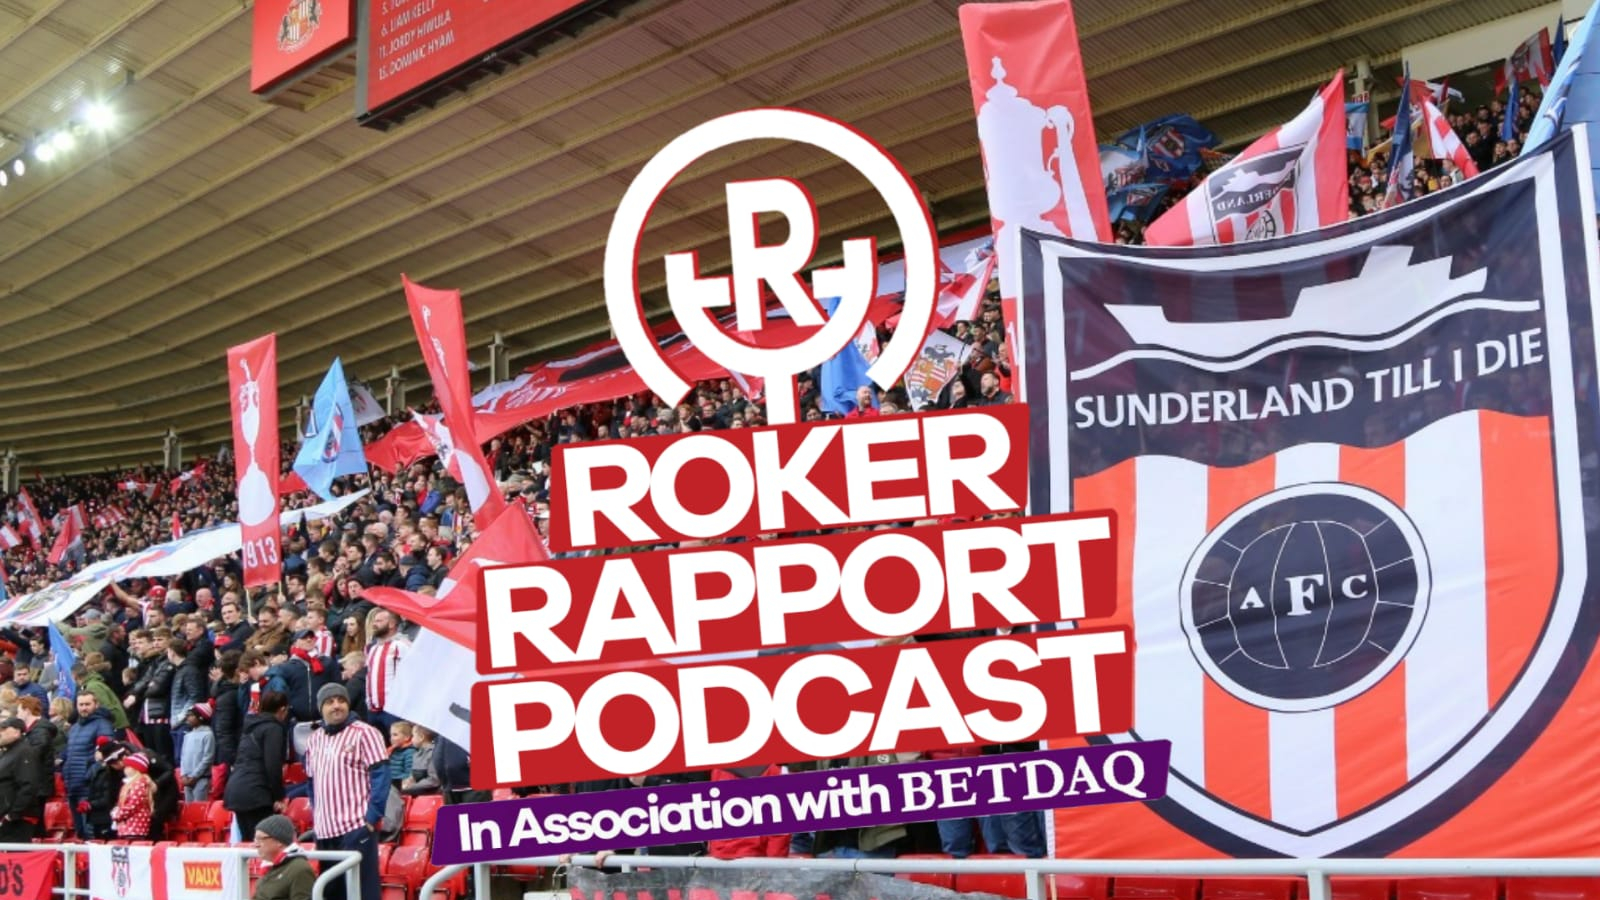 Roker Rapport Xtra Podcast: Previewing Sunderland v Portsmouth w/ Hugh from the PO4cast!